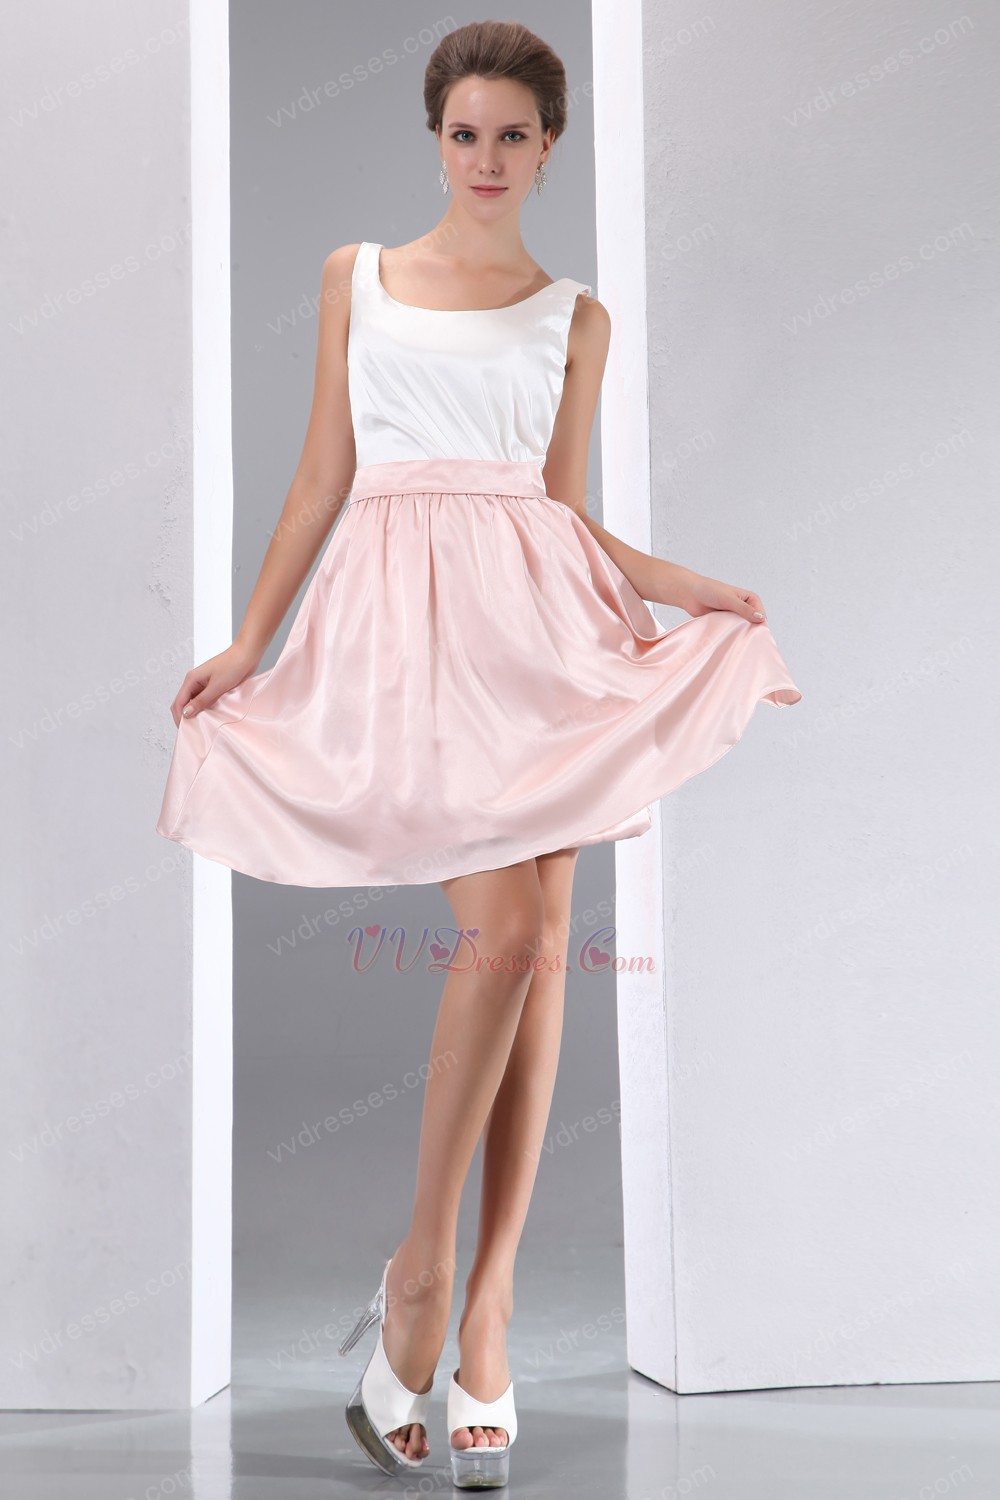 ... Dresses :: Terse Square White And Pink High School Graduation Dress